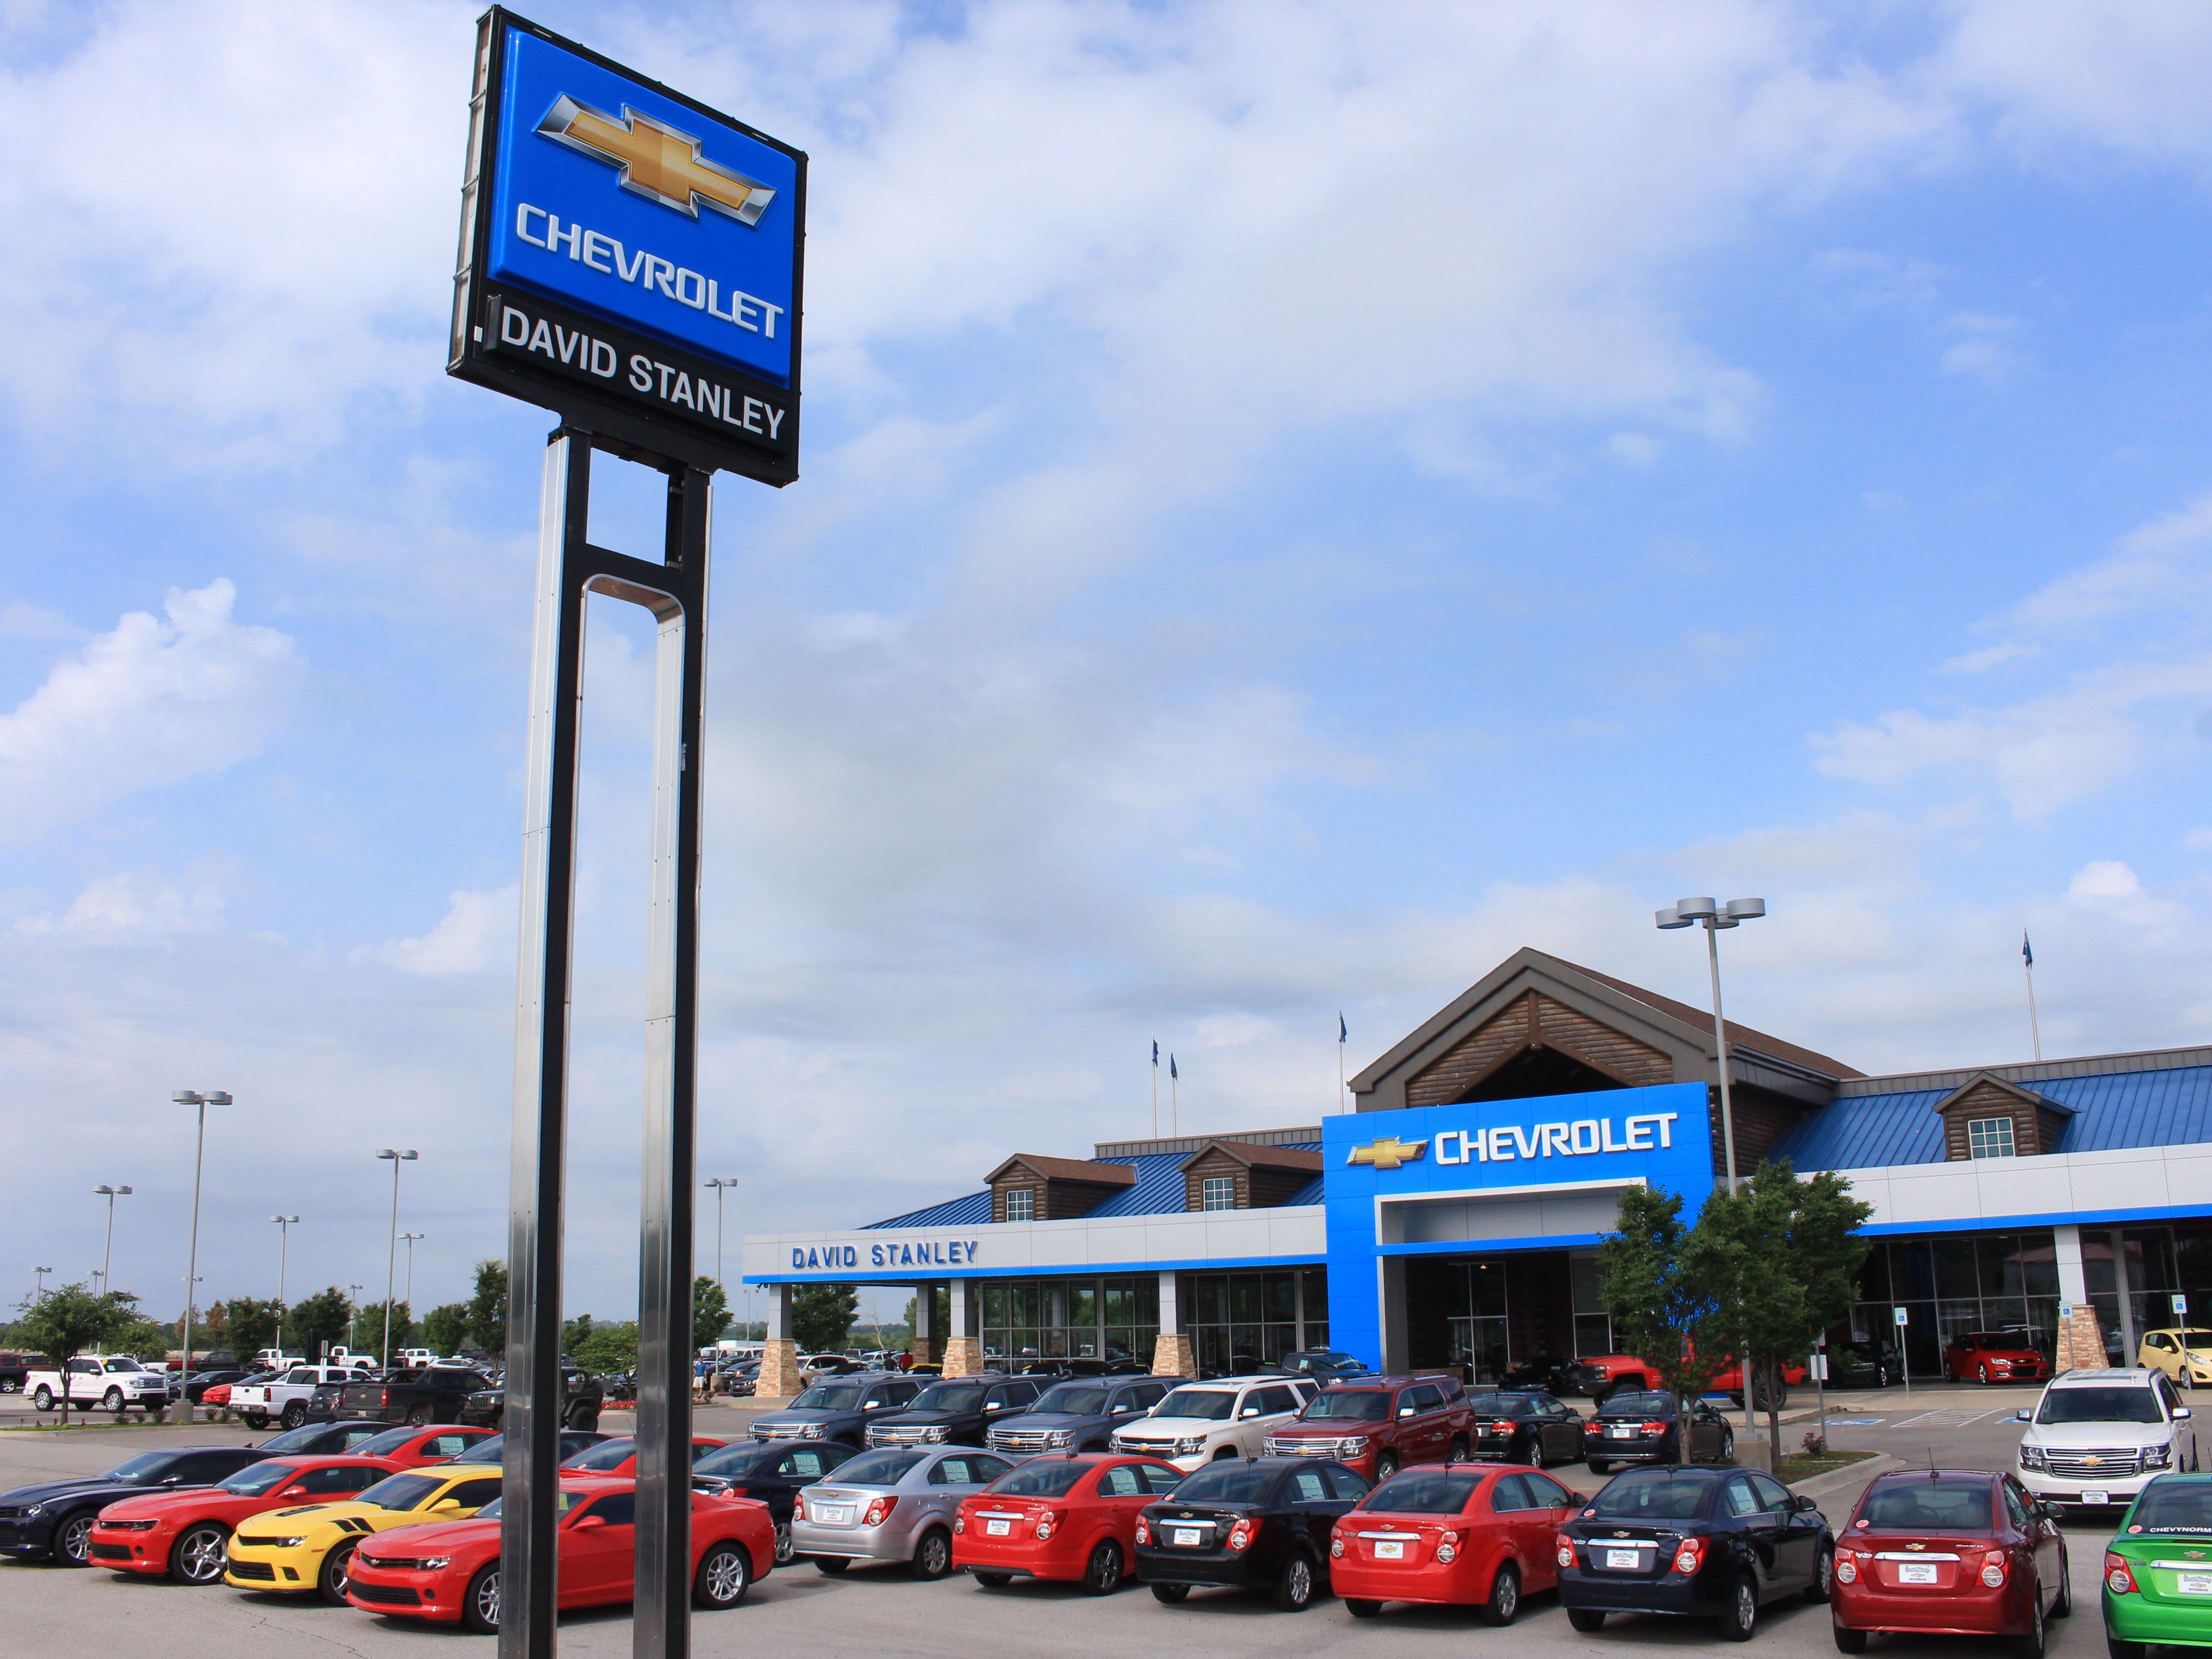 David Stanley Chevrolet Of Normanu0027s 70,000 Sq Ft Showroom Sits Atop 14  Acres With Over 1,000 Retail Vehicles To Choose From.